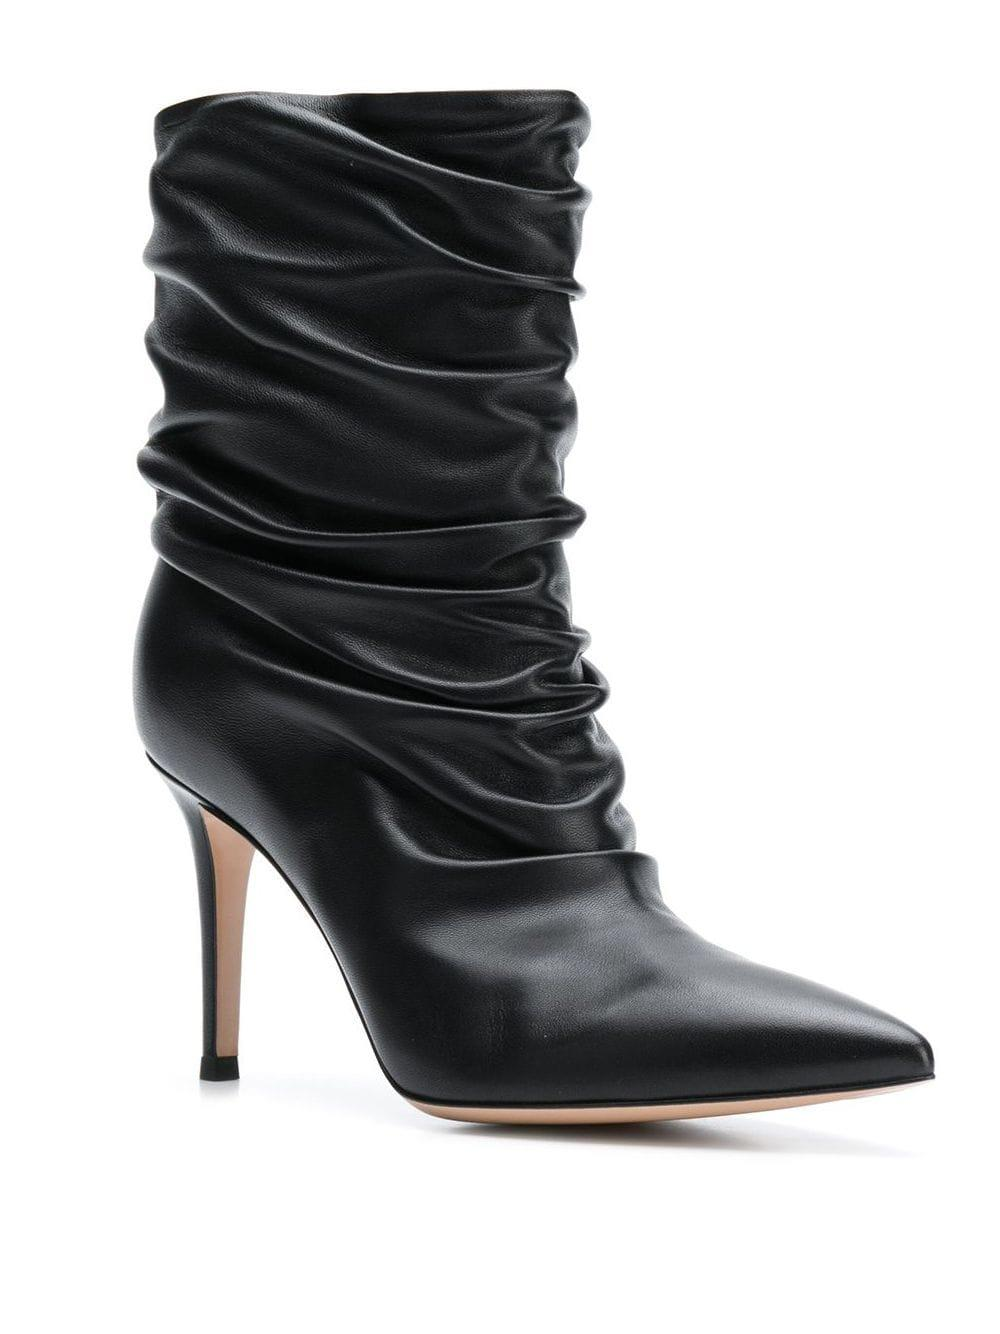 Gianvito Rossi Leather Cecile Gathered Boots in Black